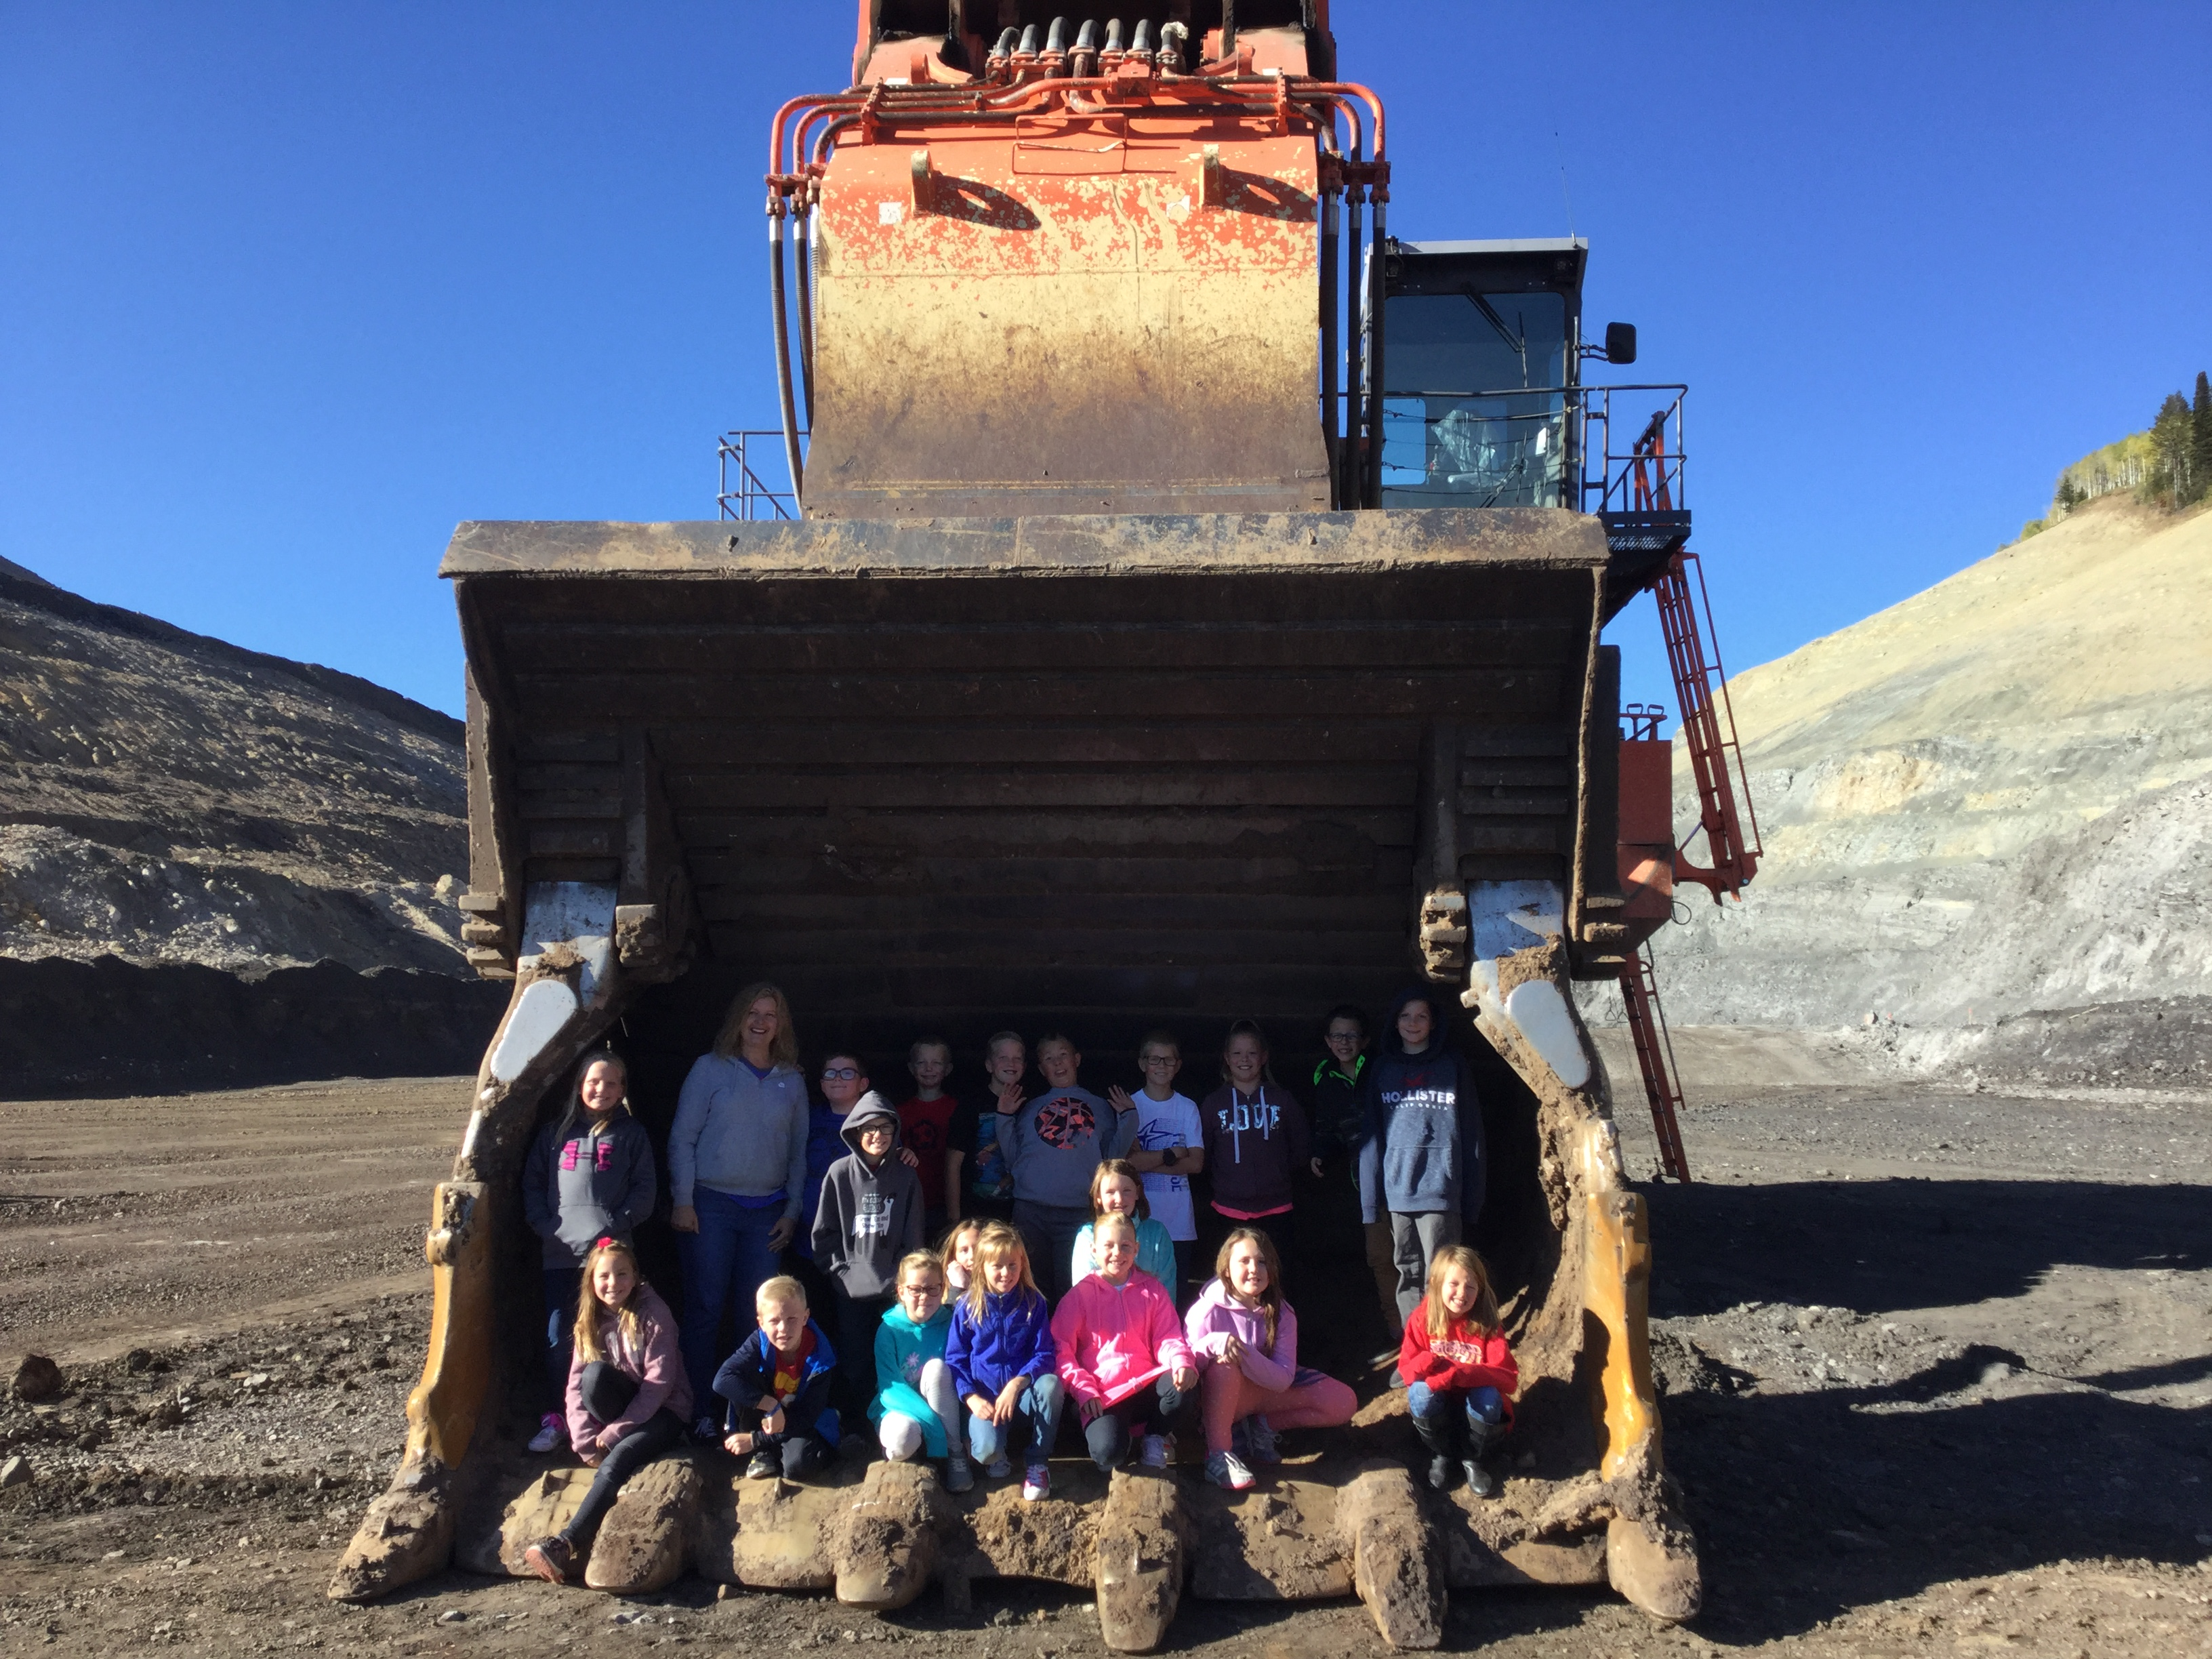 Mrs. Carlisle's class on their fieldtrip to Smokey Canyon Mine in the mouth of a dozer.